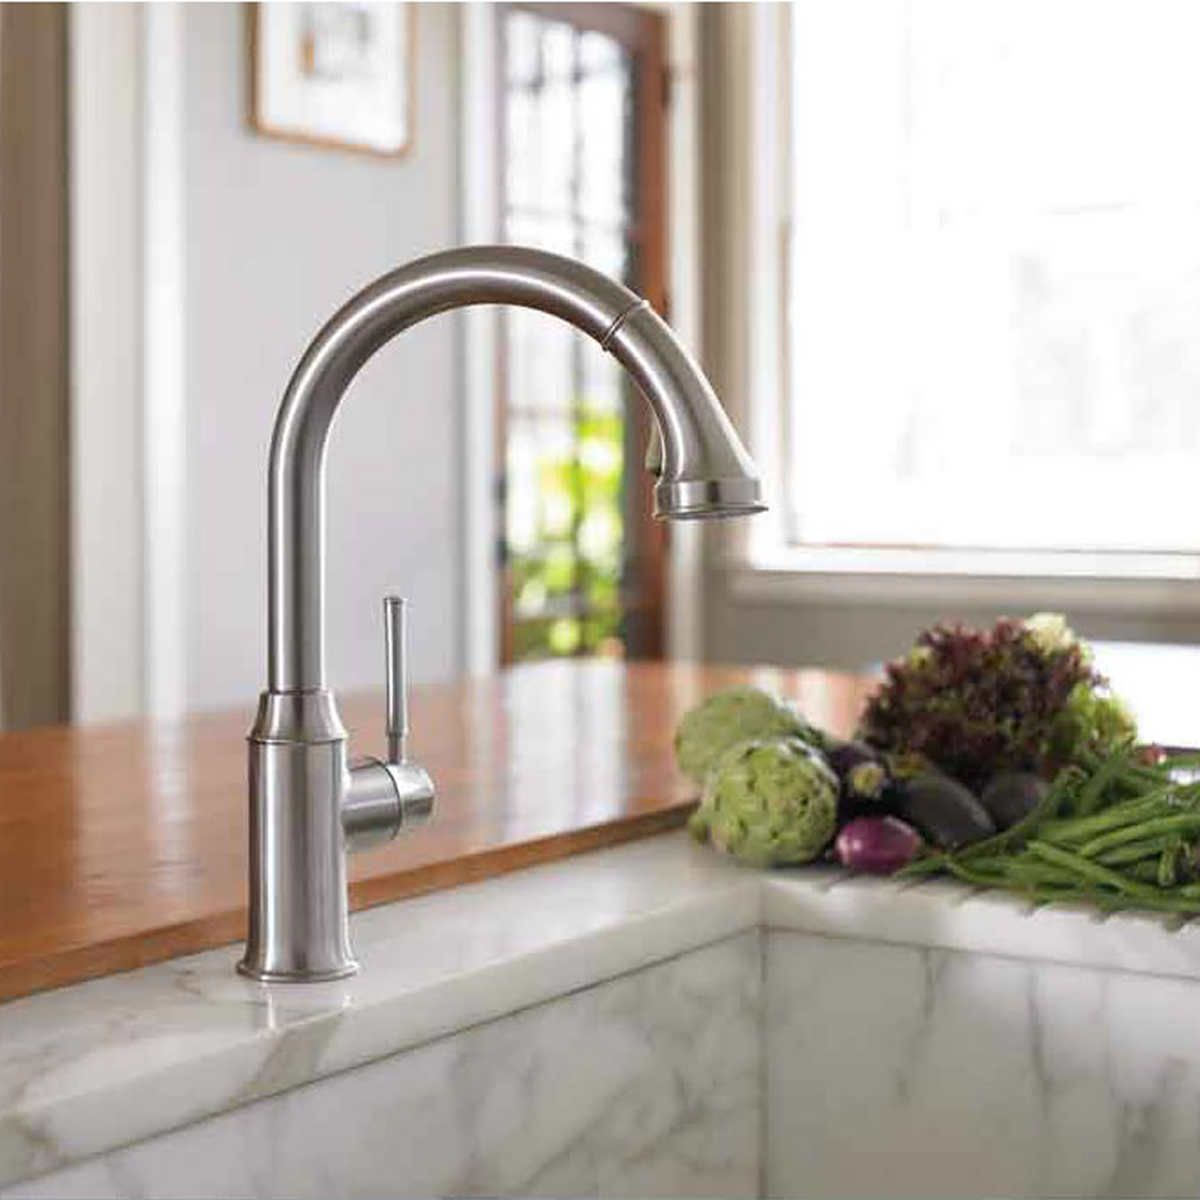 Awesome Awesome Kitchen Faucets Costco 73 About Remodel Home Simple Costco Kitchen Faucet Design Decoration